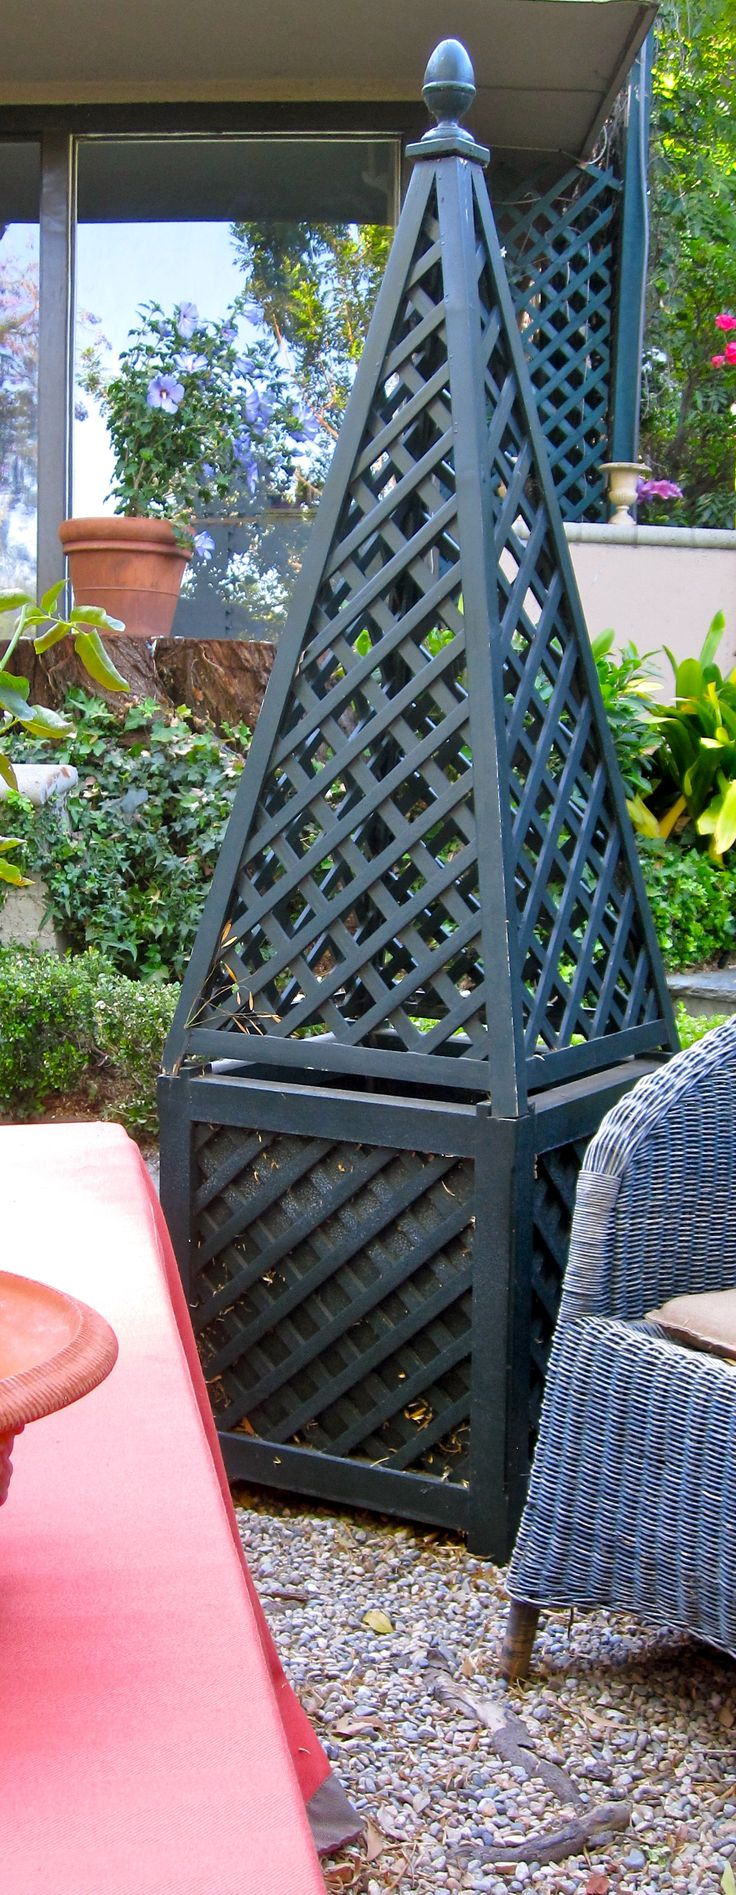 French tuteur trellis woodworking projects amp plans - I Like The Architecture These Obelisks Bring To The Garden From Interior Designs Decorating Garden Design Design Ideas